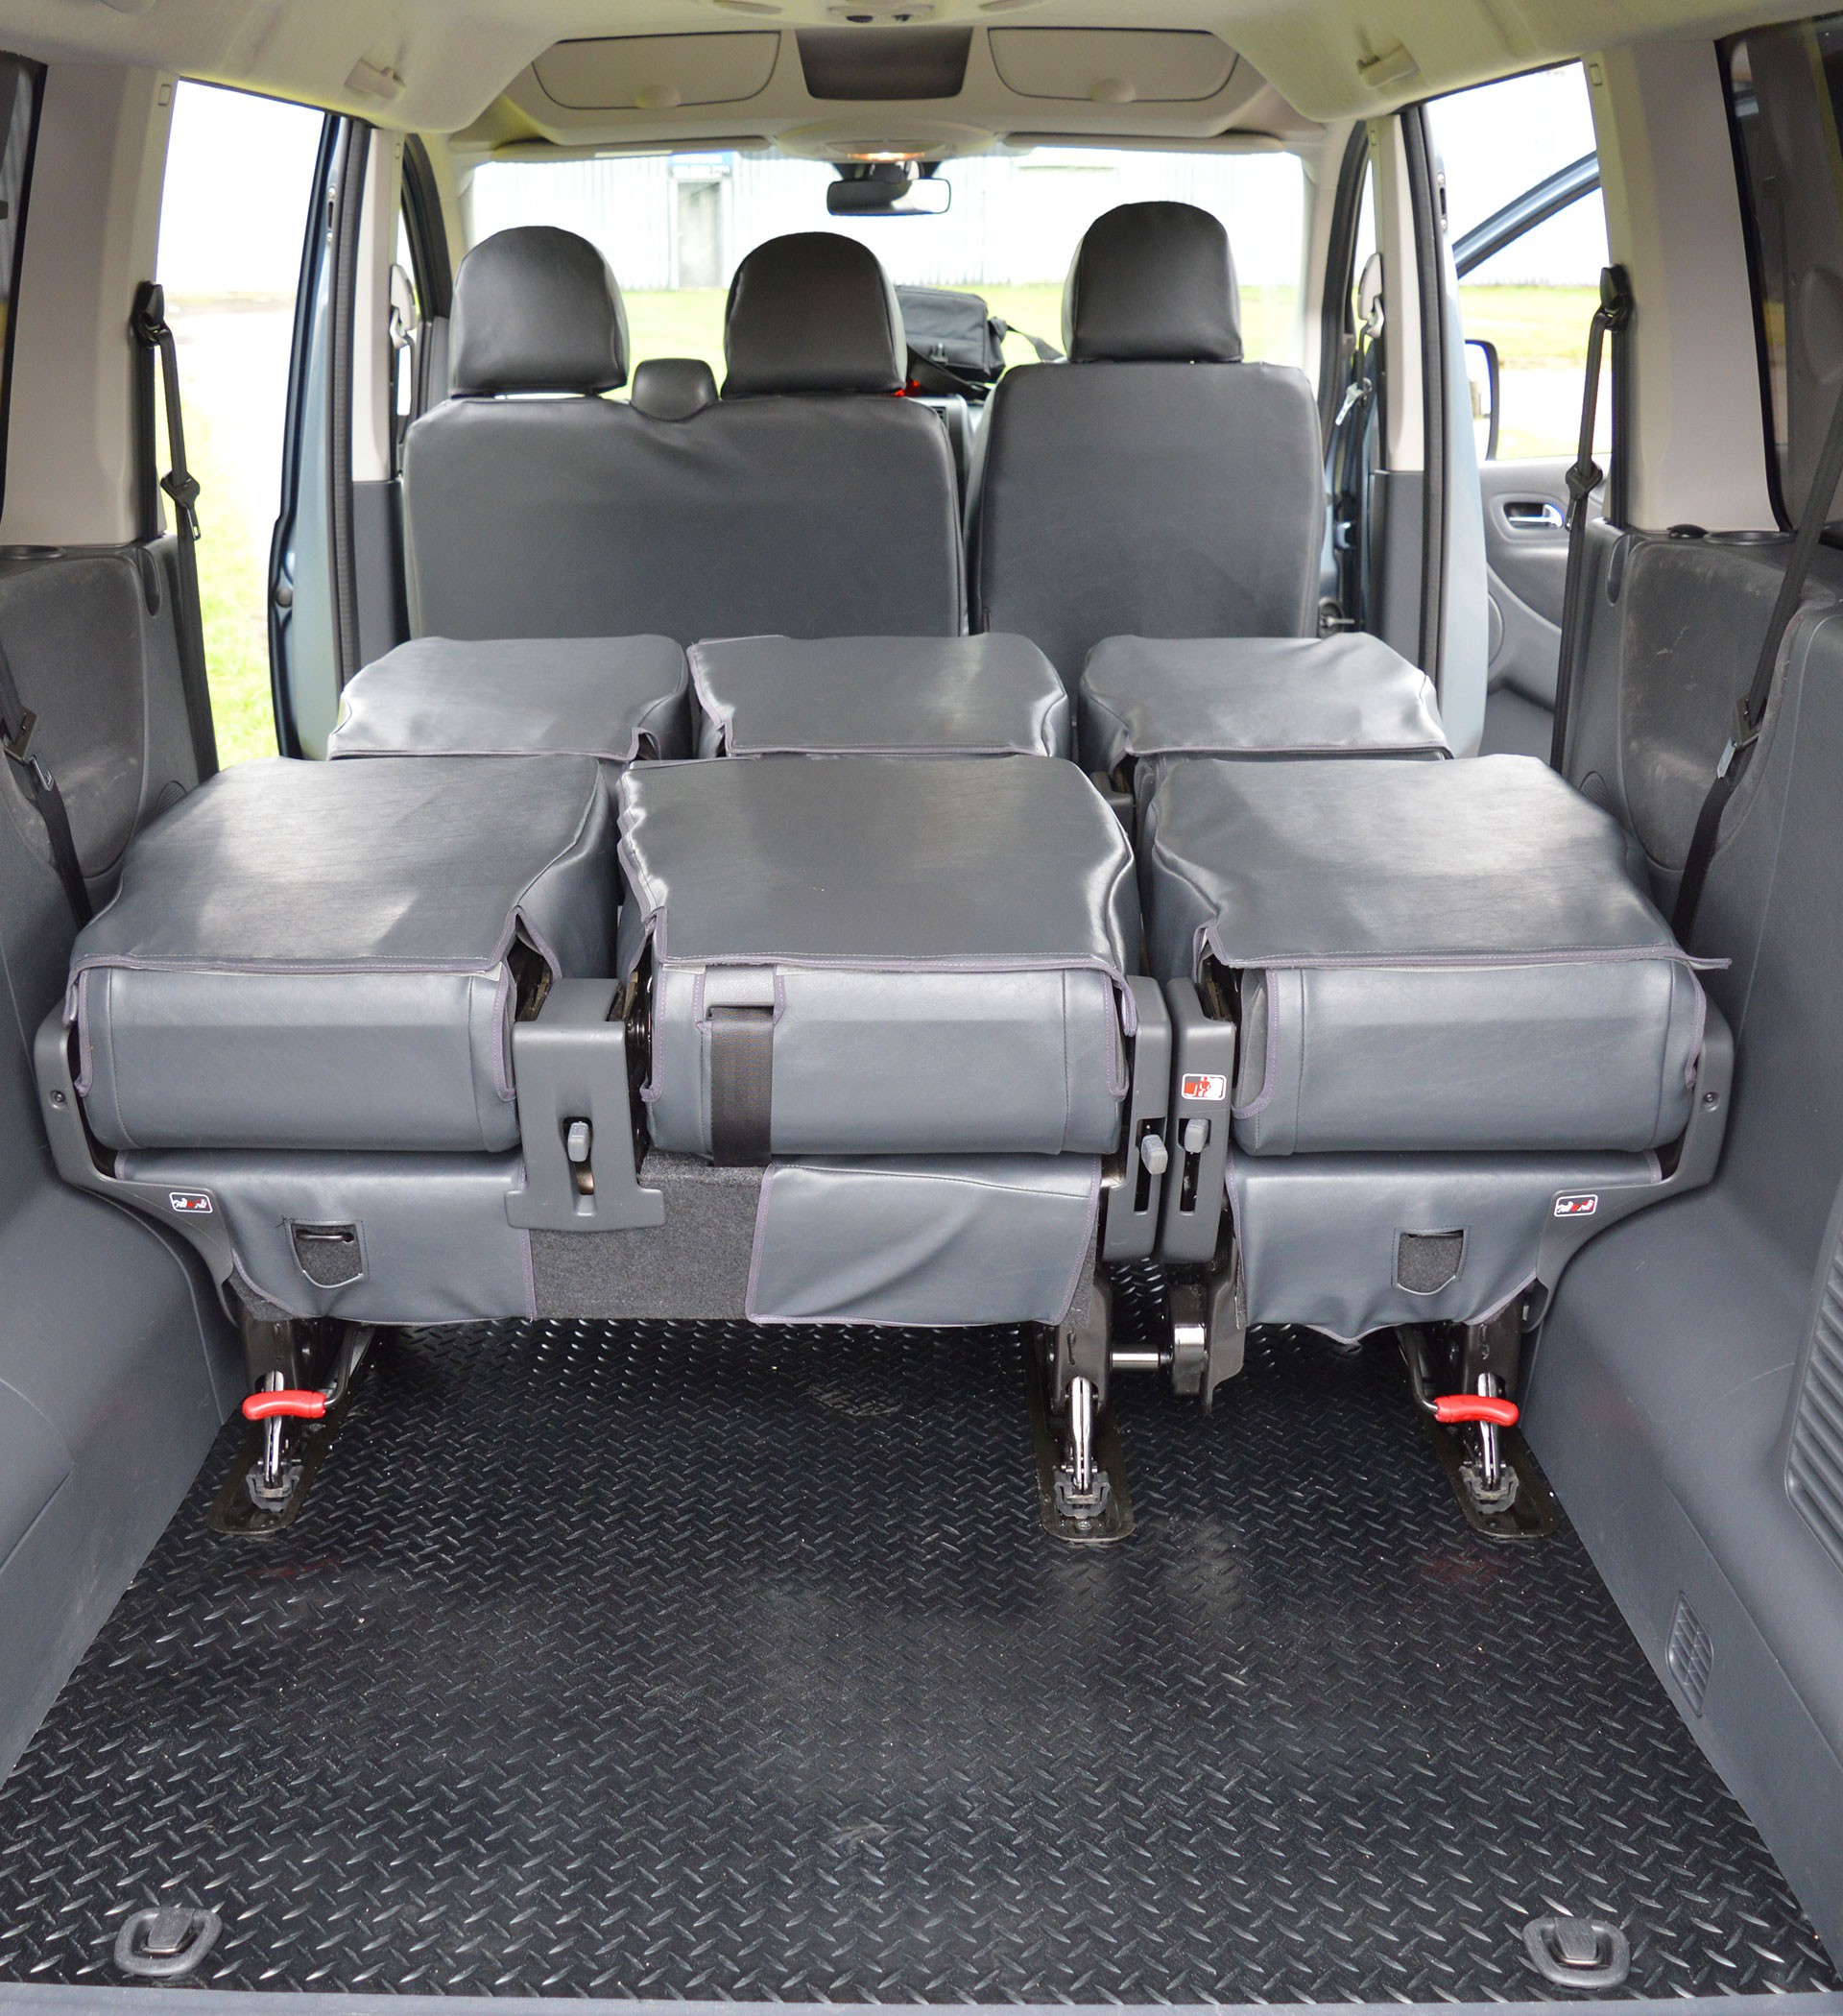 8 Seater Vehicles >> Peugeot Expert 9 Seater Waterproof Tailored Van Seat Covers